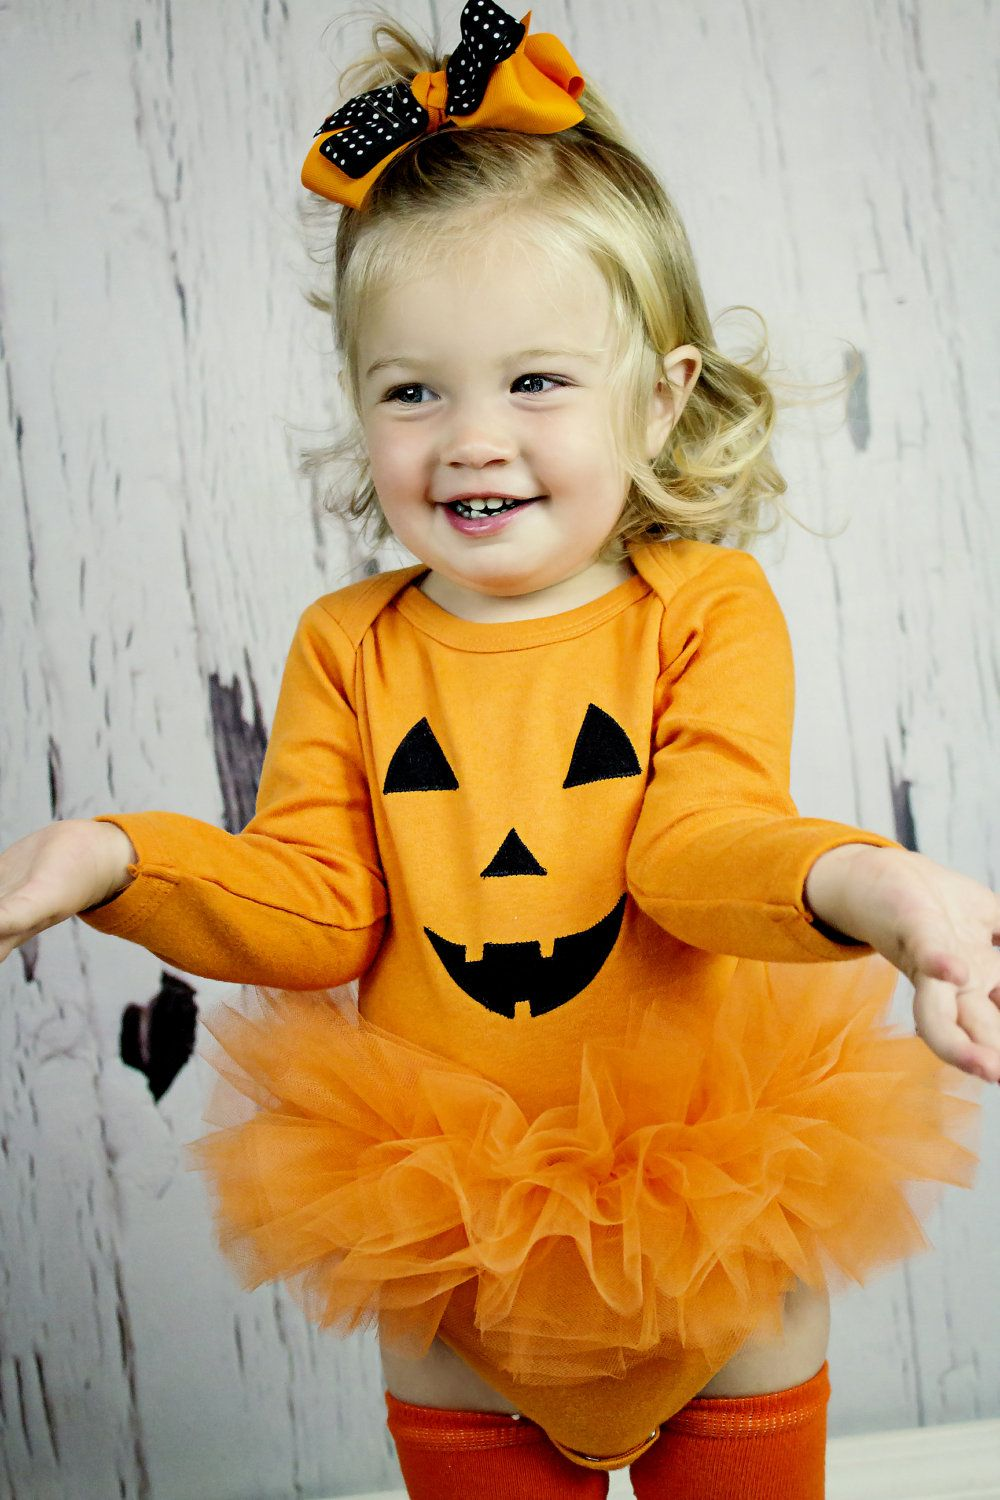 Jack O Lantern Baby Girl Tutu Bodysuit And Leg Warmer Set- Halloween Pumpkin Costume  sc 1 st  Pinterest & Jack O Lantern Baby Girl Tutu Bodysuit And Leg Warmer Set- Halloween ...